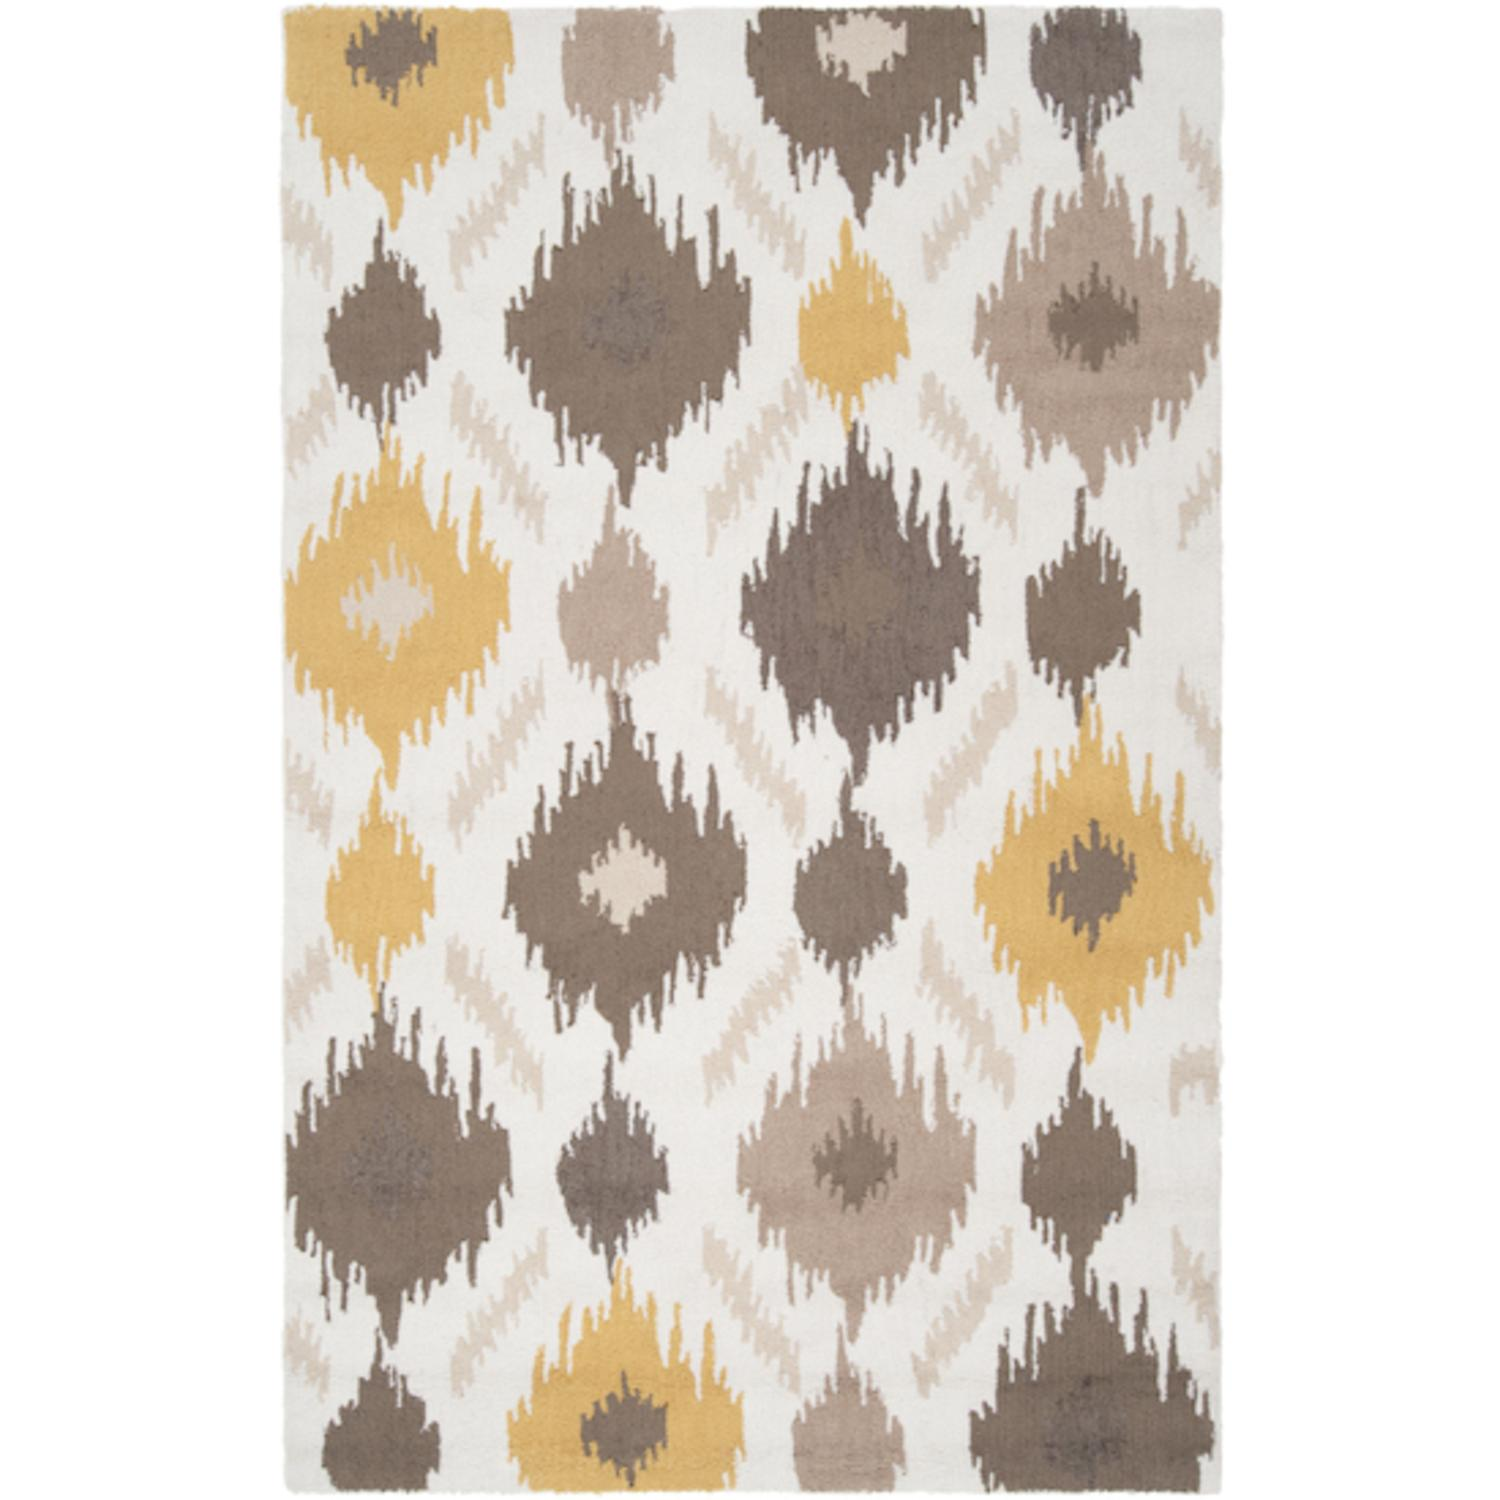 5' x 8' Amarillo Gold, Mushroom and Feather Gray Hand Hooked Area Throw Rug